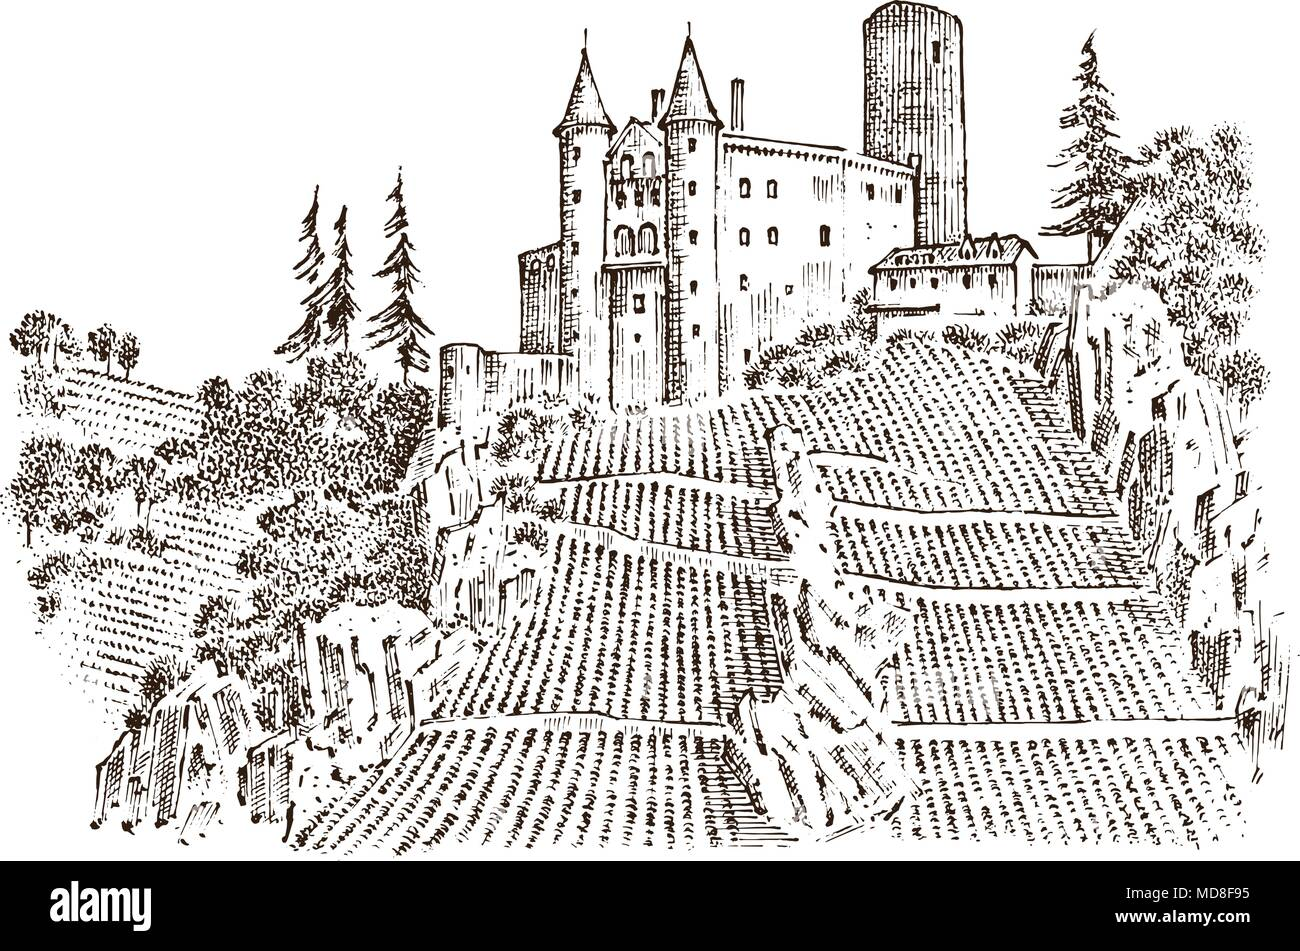 Castle On A Hill Ancient Landscape For The Label Engraved Hand Drawn Sketch In